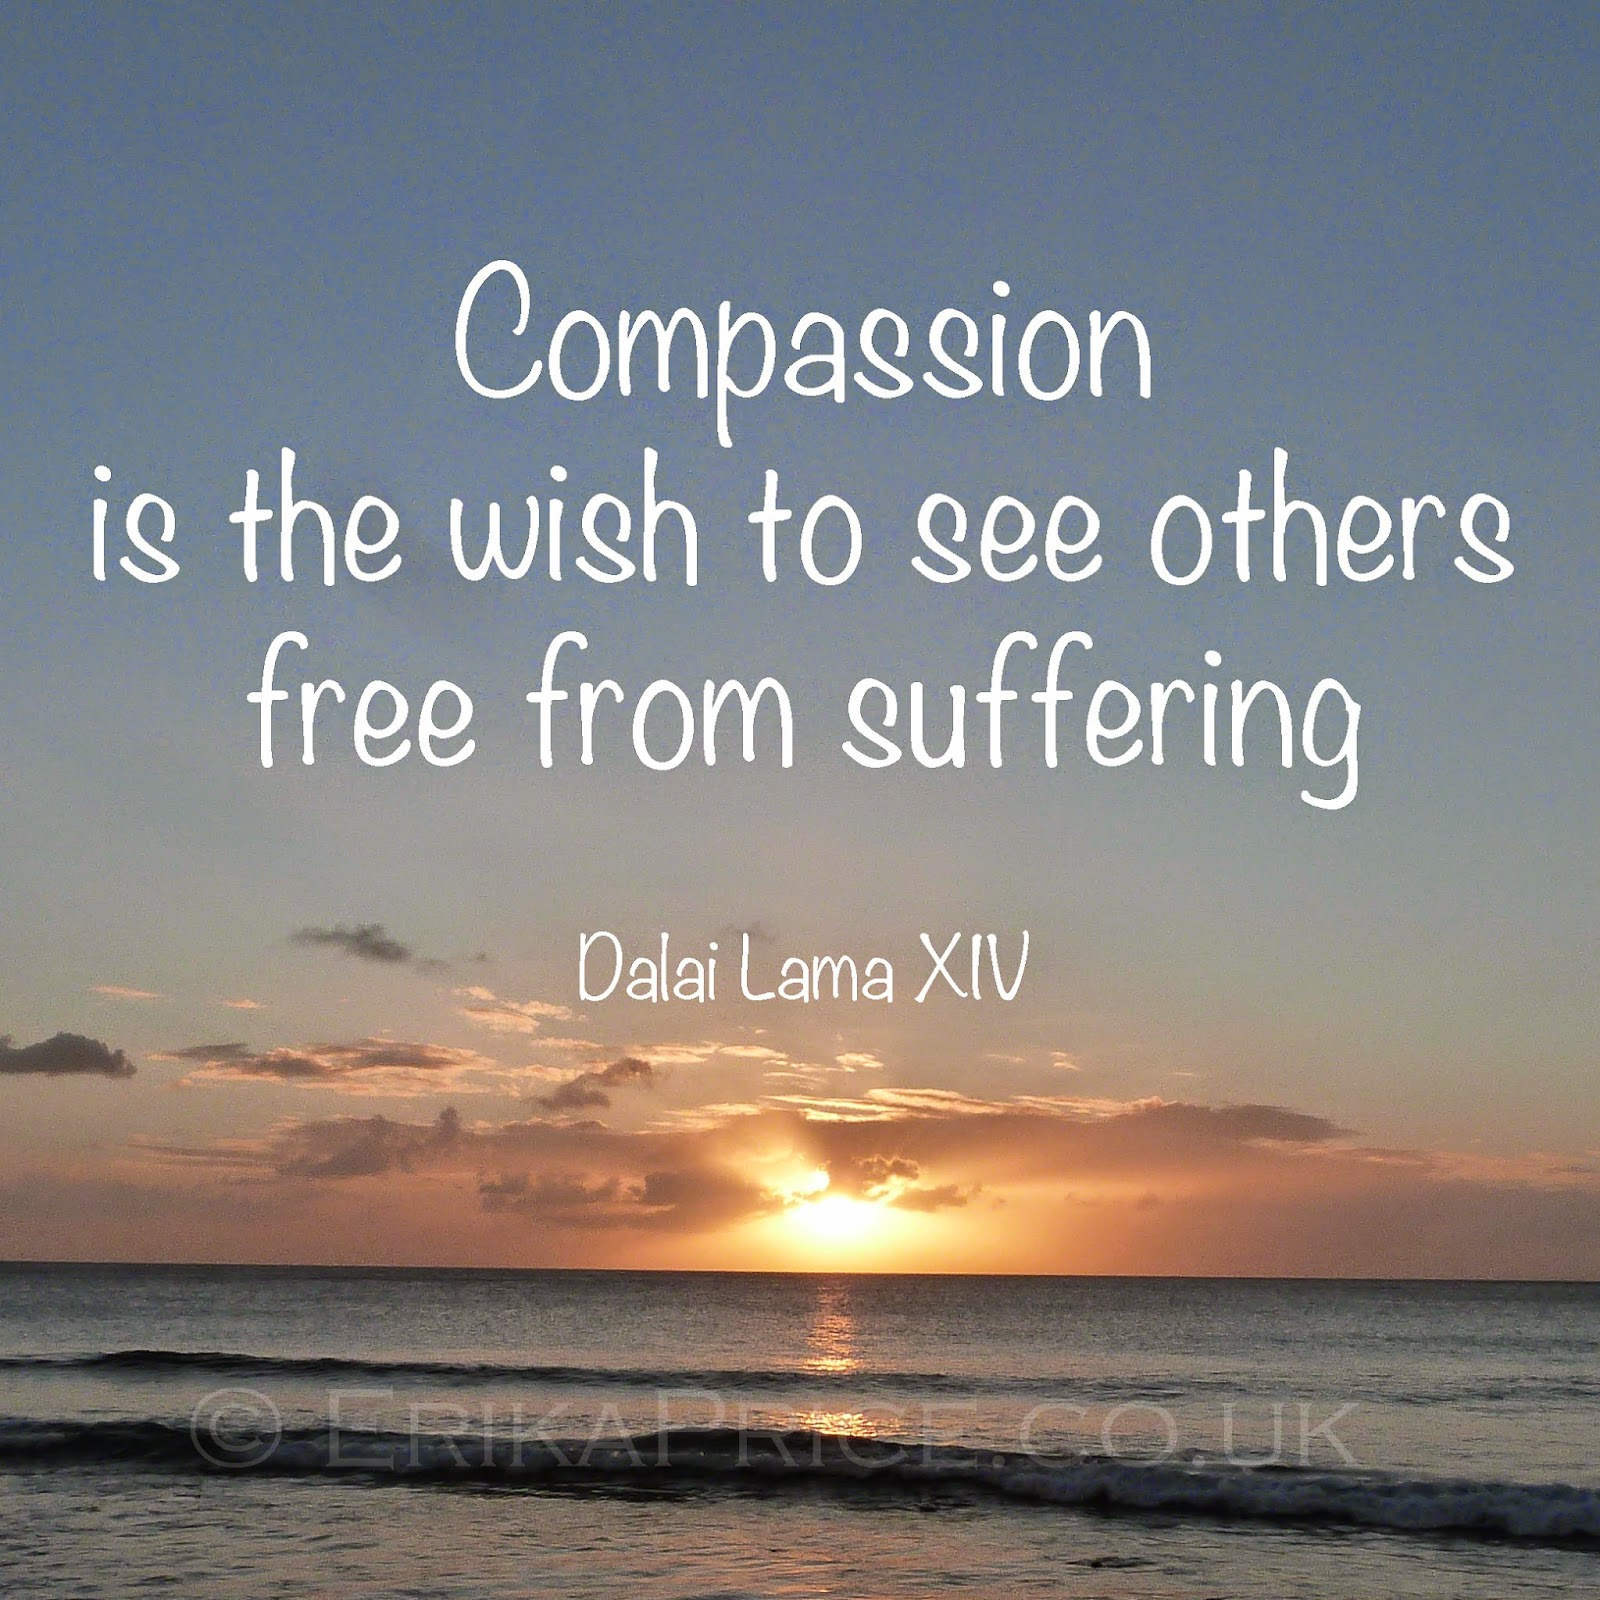 an analysis of the dalai lama wisdom derived from suffering The dalai lama has some very  10- if you have fear of some pain or suffering,  a foolish man cannot understand the wise man´s wisdom even if he .